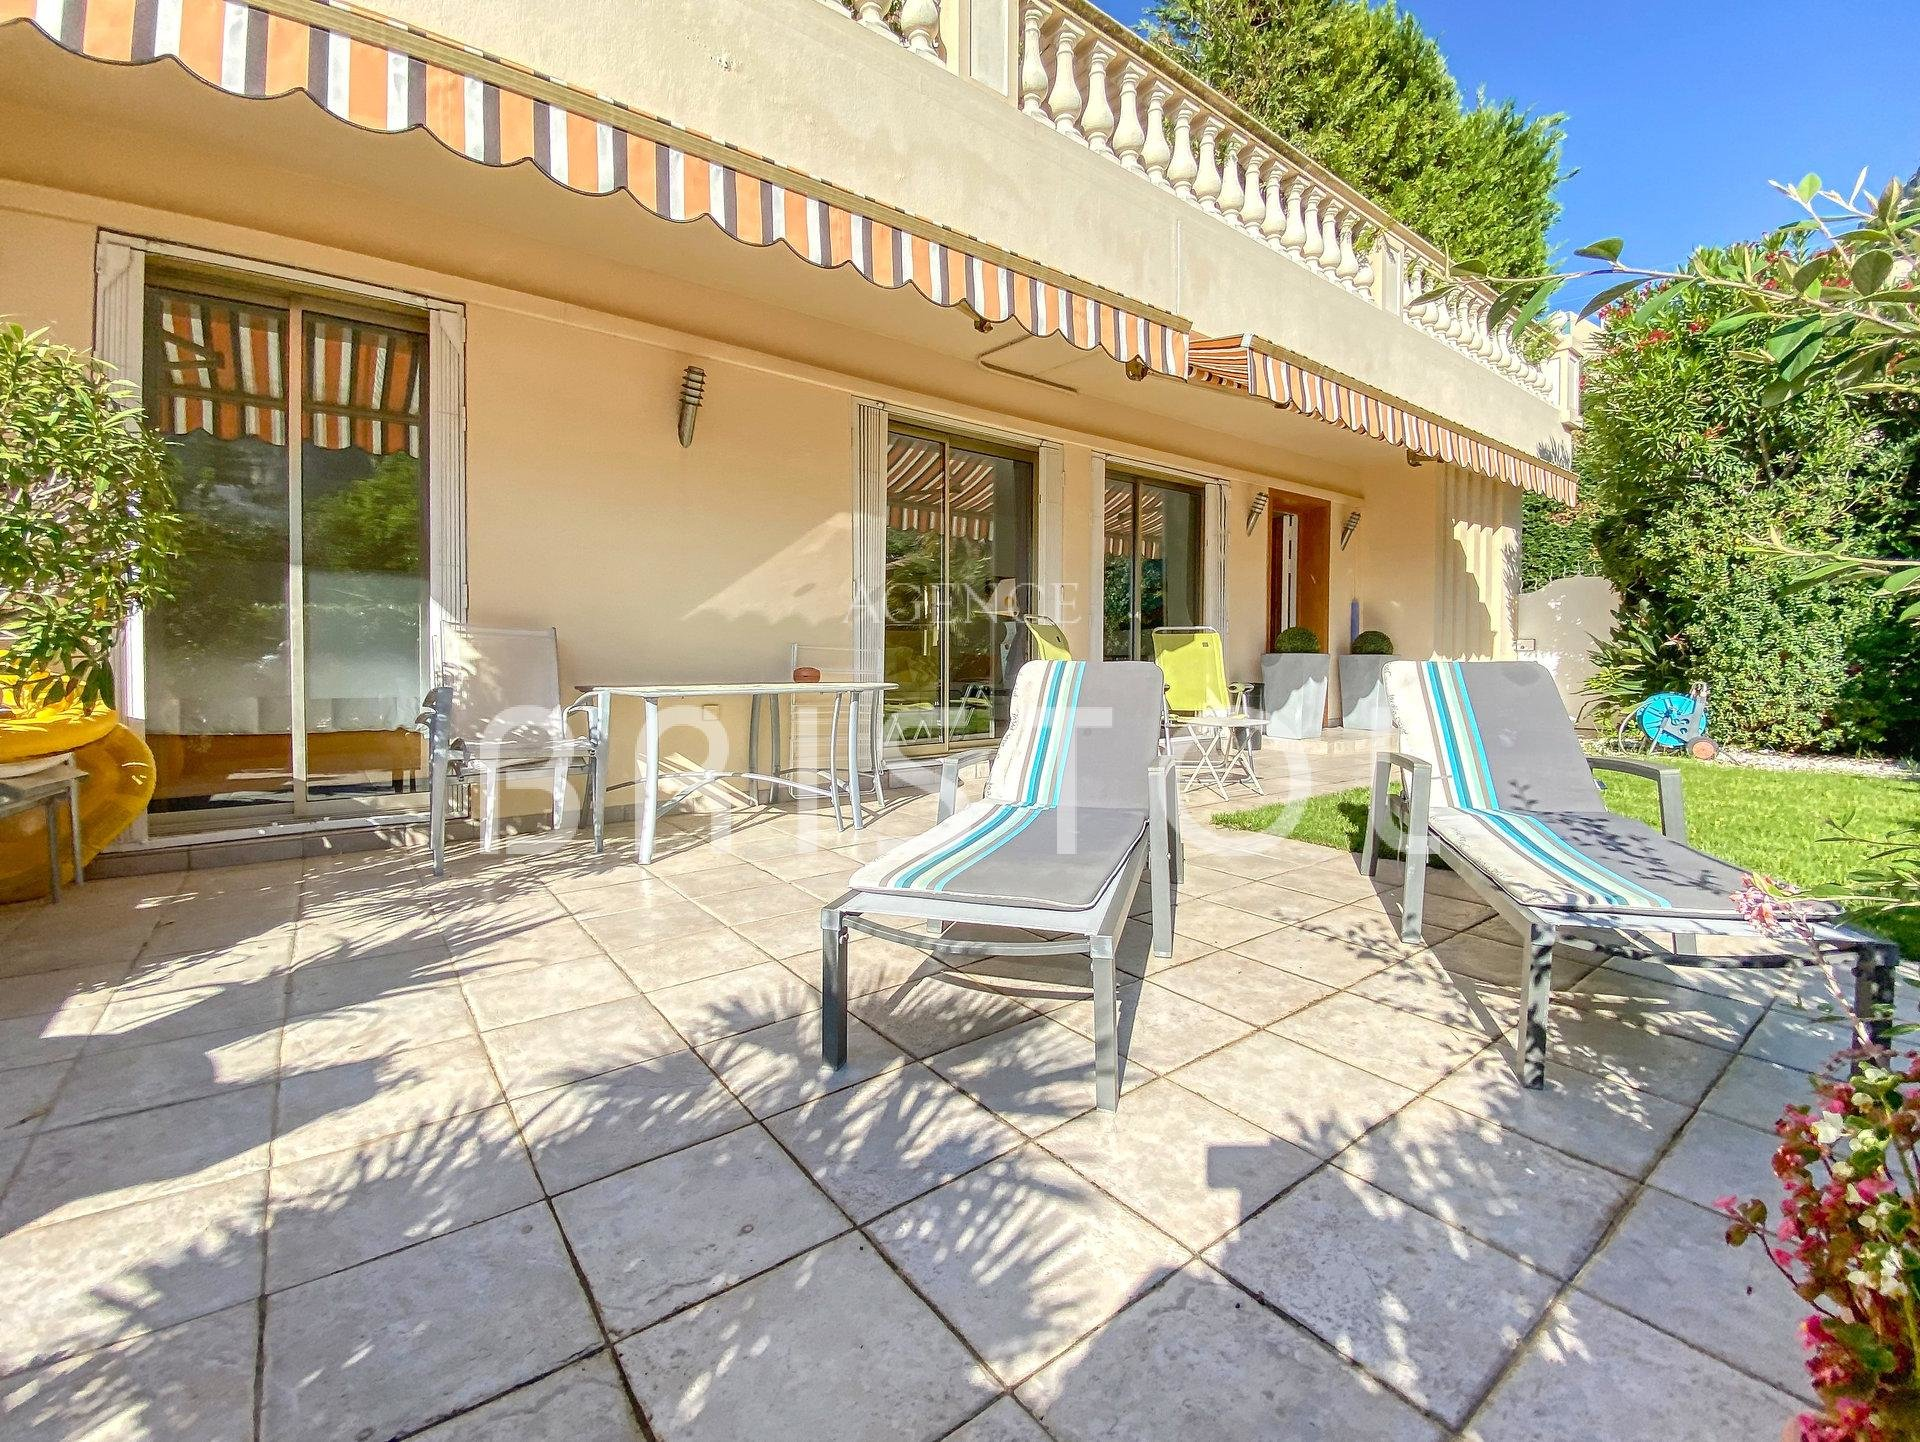 Apartment villa for sale in Beaulieu with terrace and garden